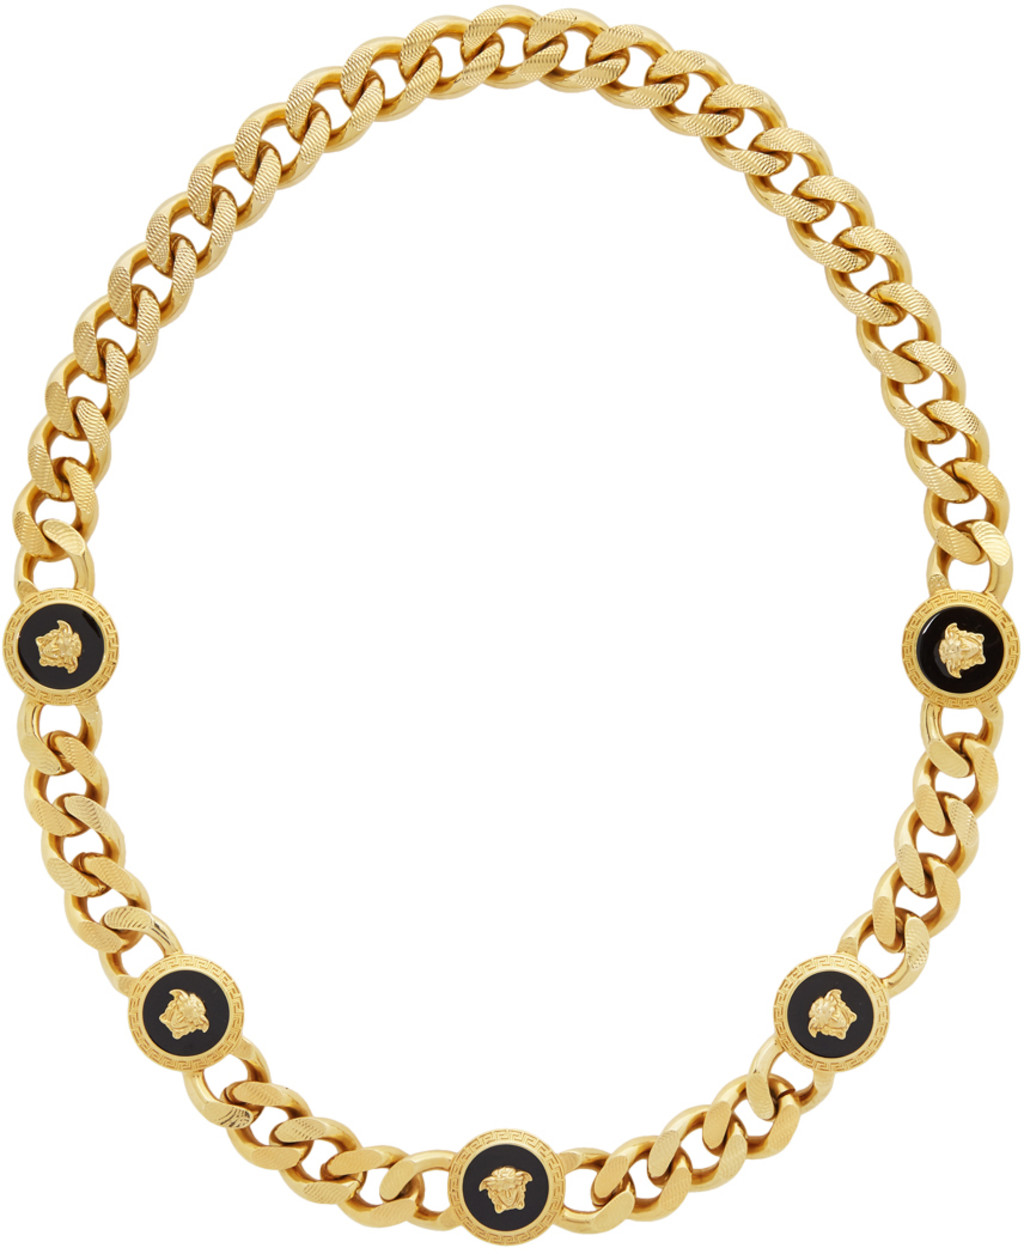 5dc051a2378c2 Gold Resin Medusa Chain Necklace